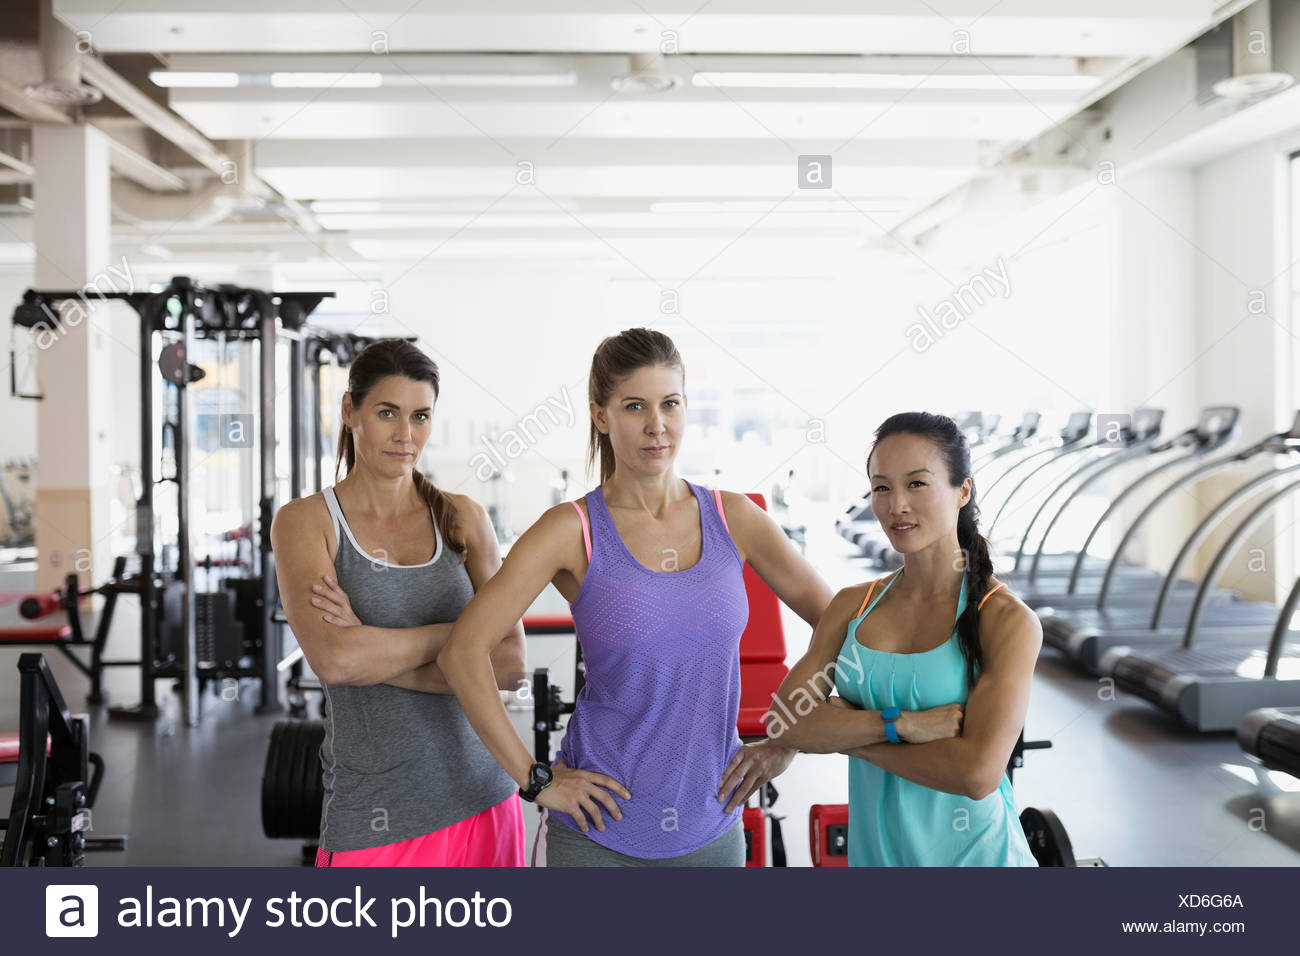 Portrait confident women expressing attitude in gym - Stock Image